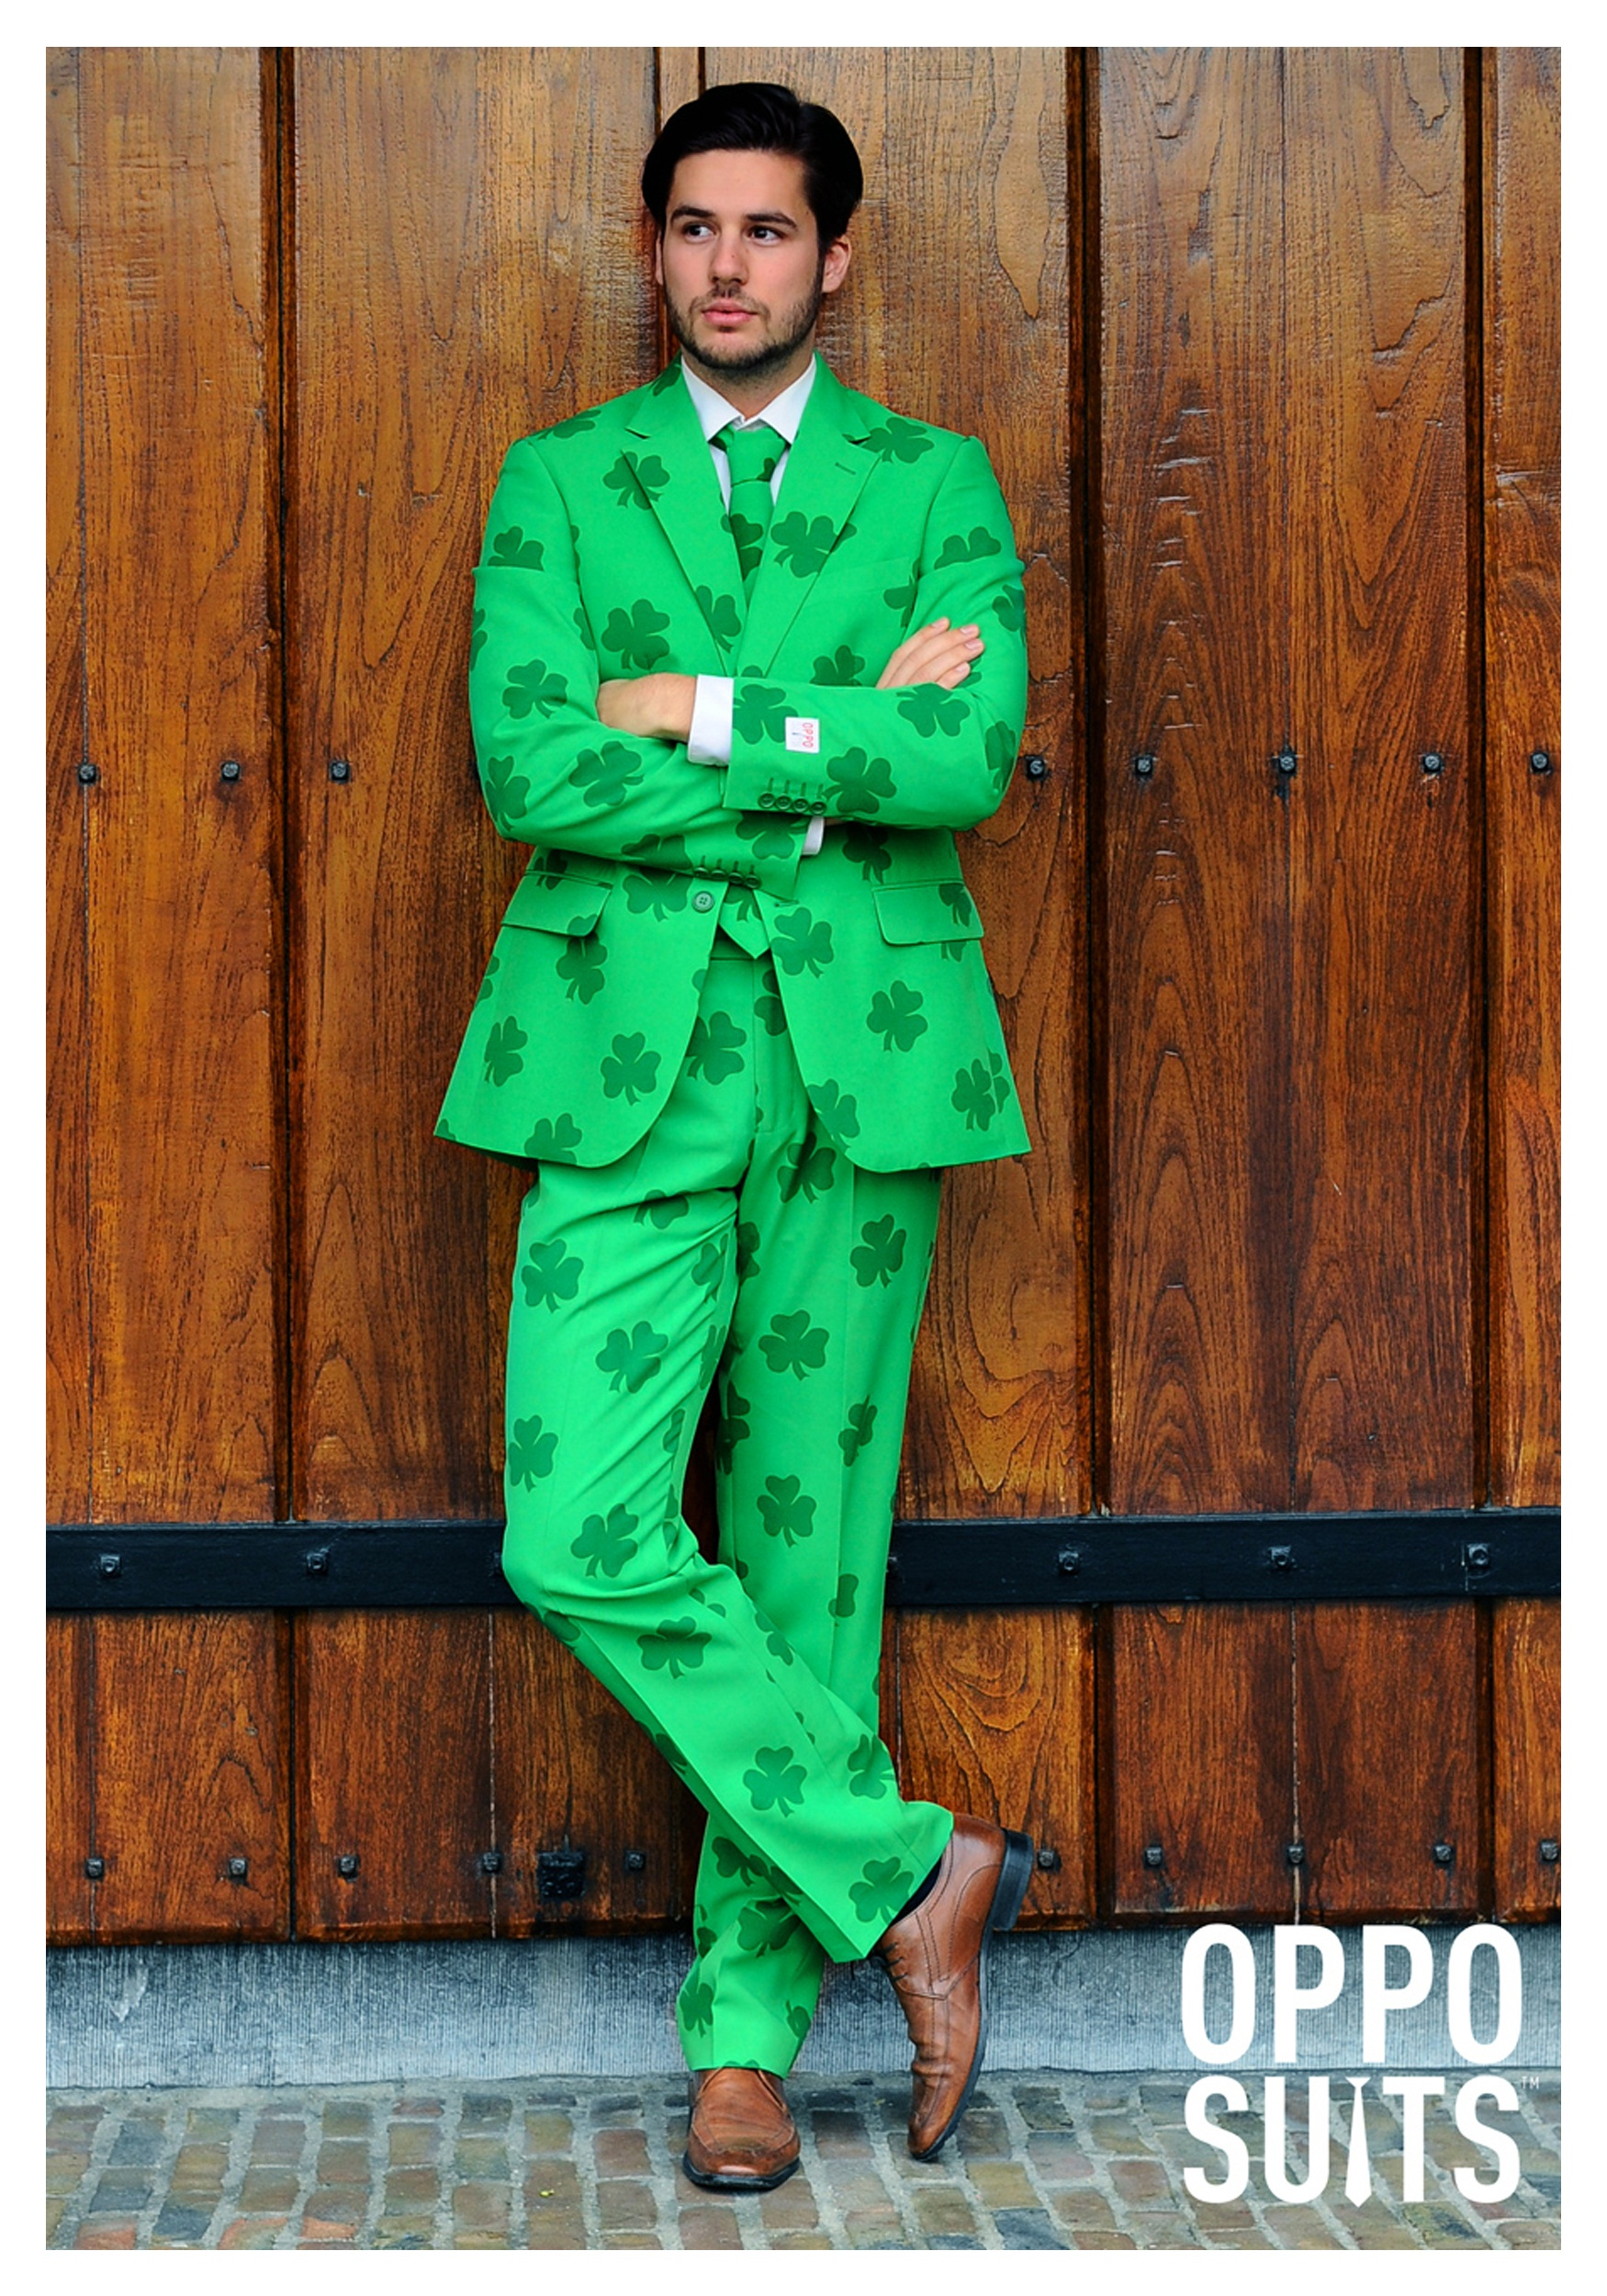 Green Suits For Men Suit Image 2 Men 39 s Green